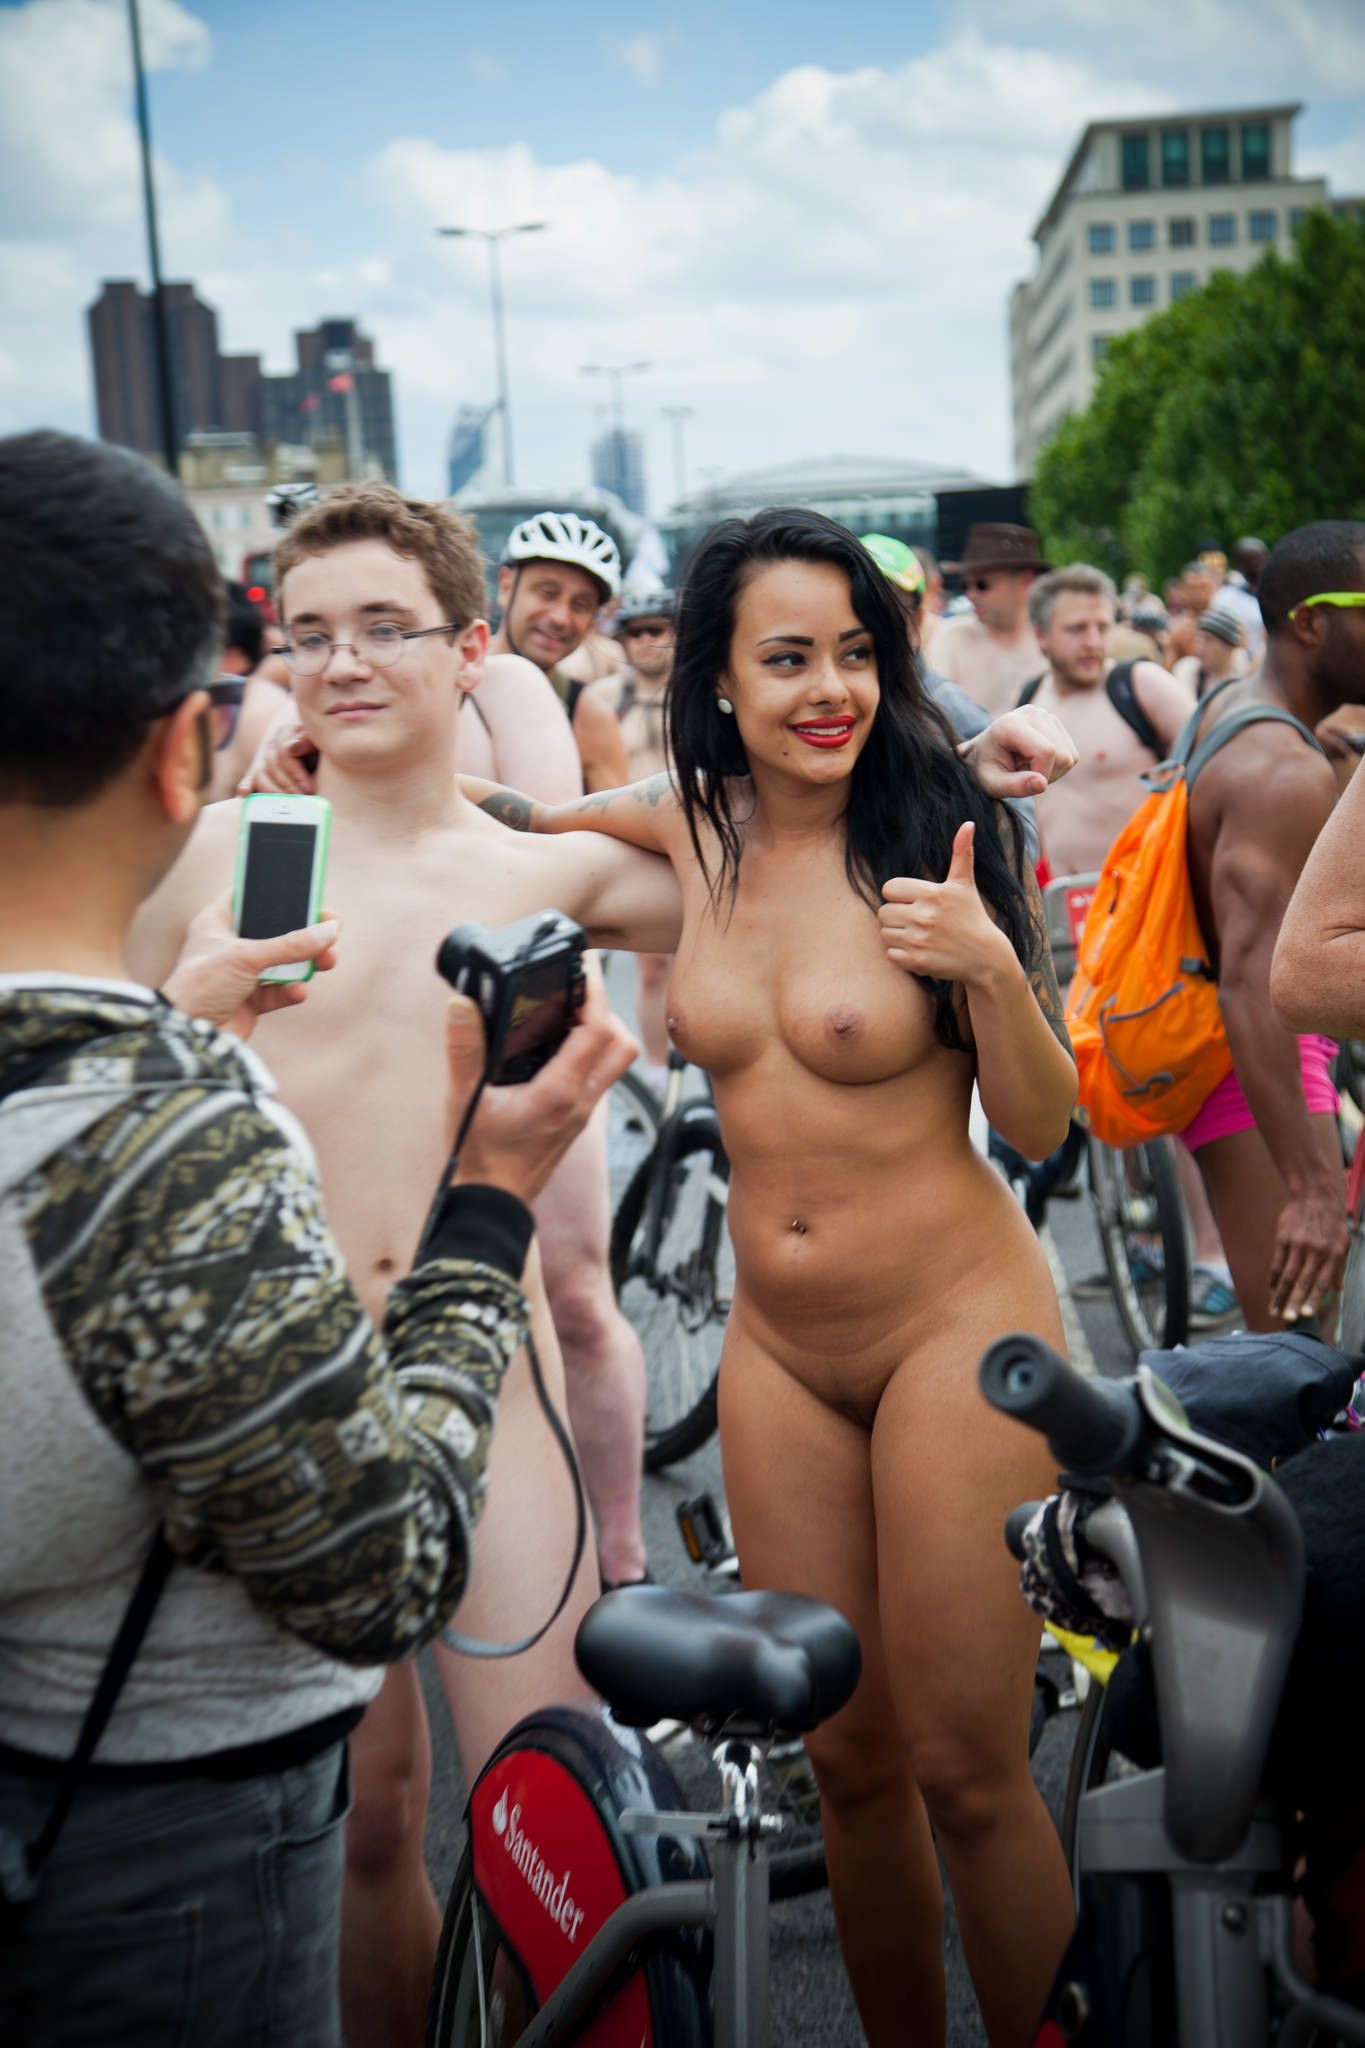 World Naked Bike Ride London Naked And Nude In Public Pics -9631